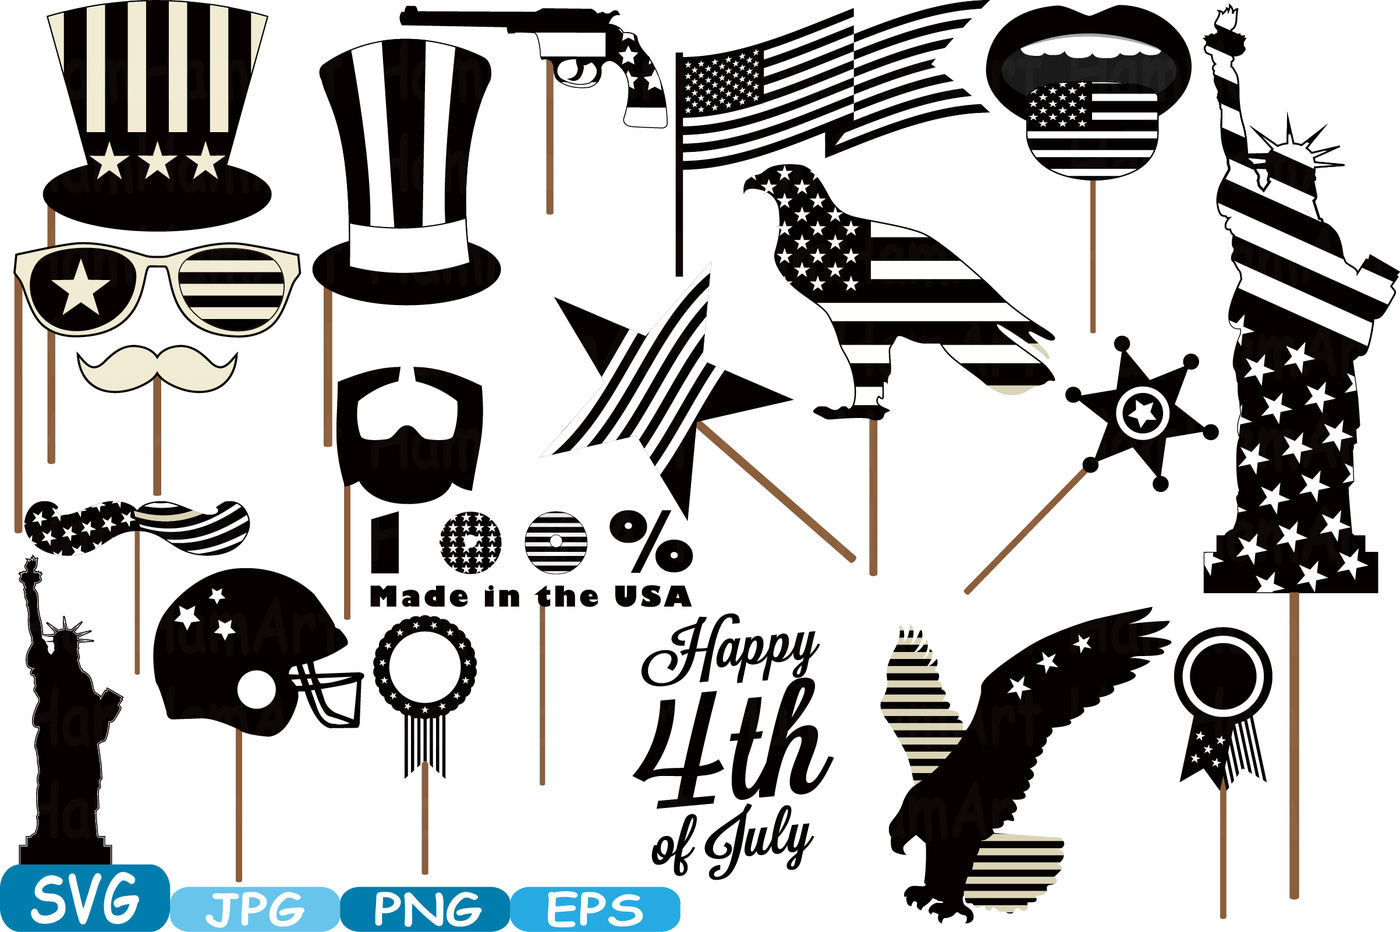 4th Of July Party Photo Booth Prop Silhouette Cameo Cutting Files